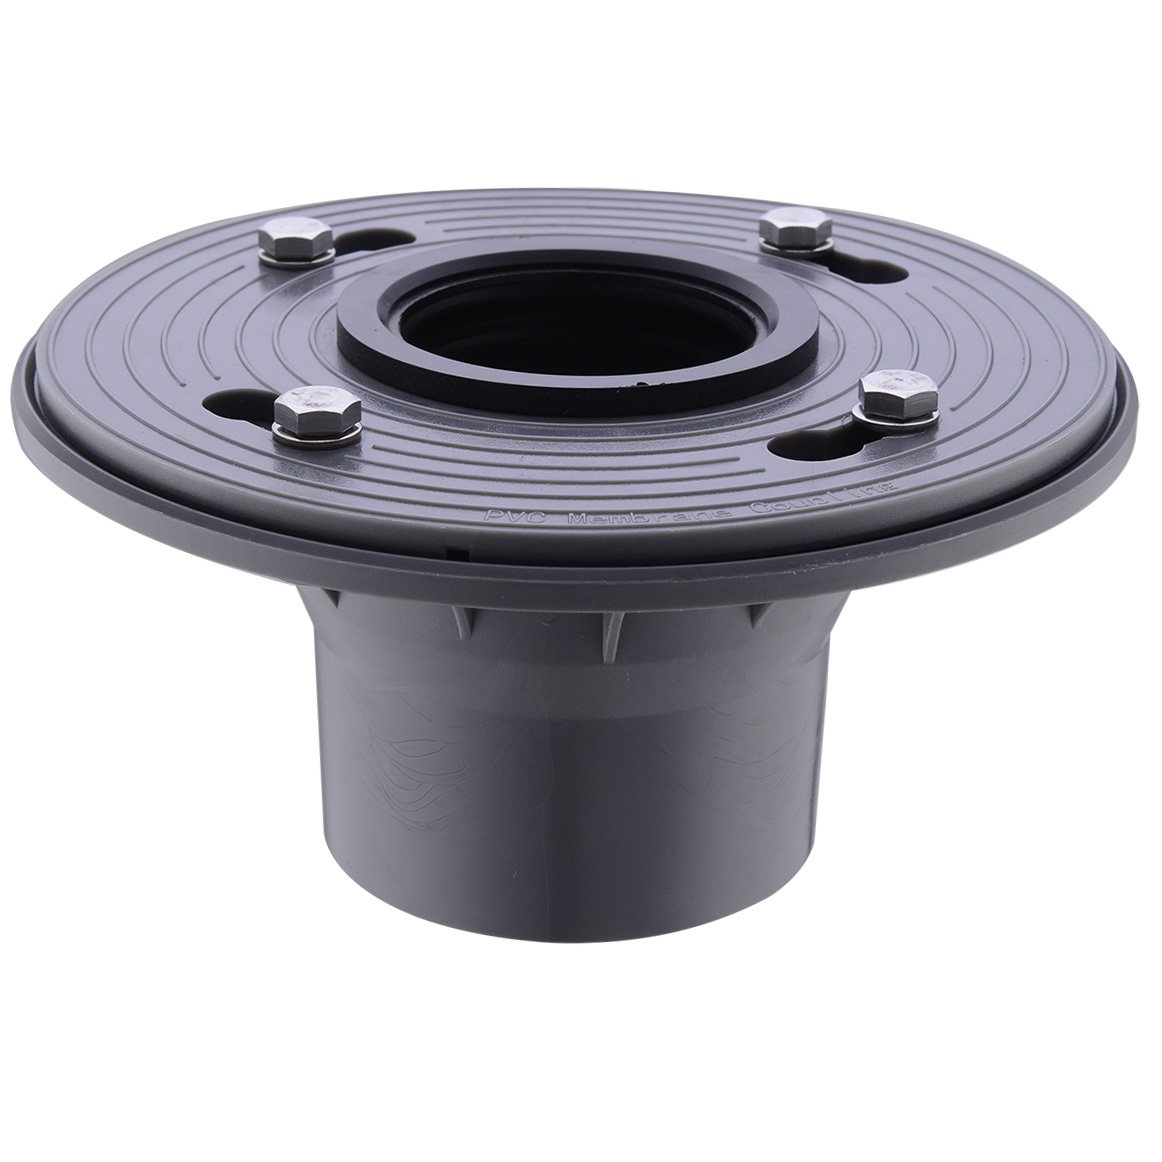 HANEBATH 2 Inch PVC Shower Drain Base with Rubber Gasket